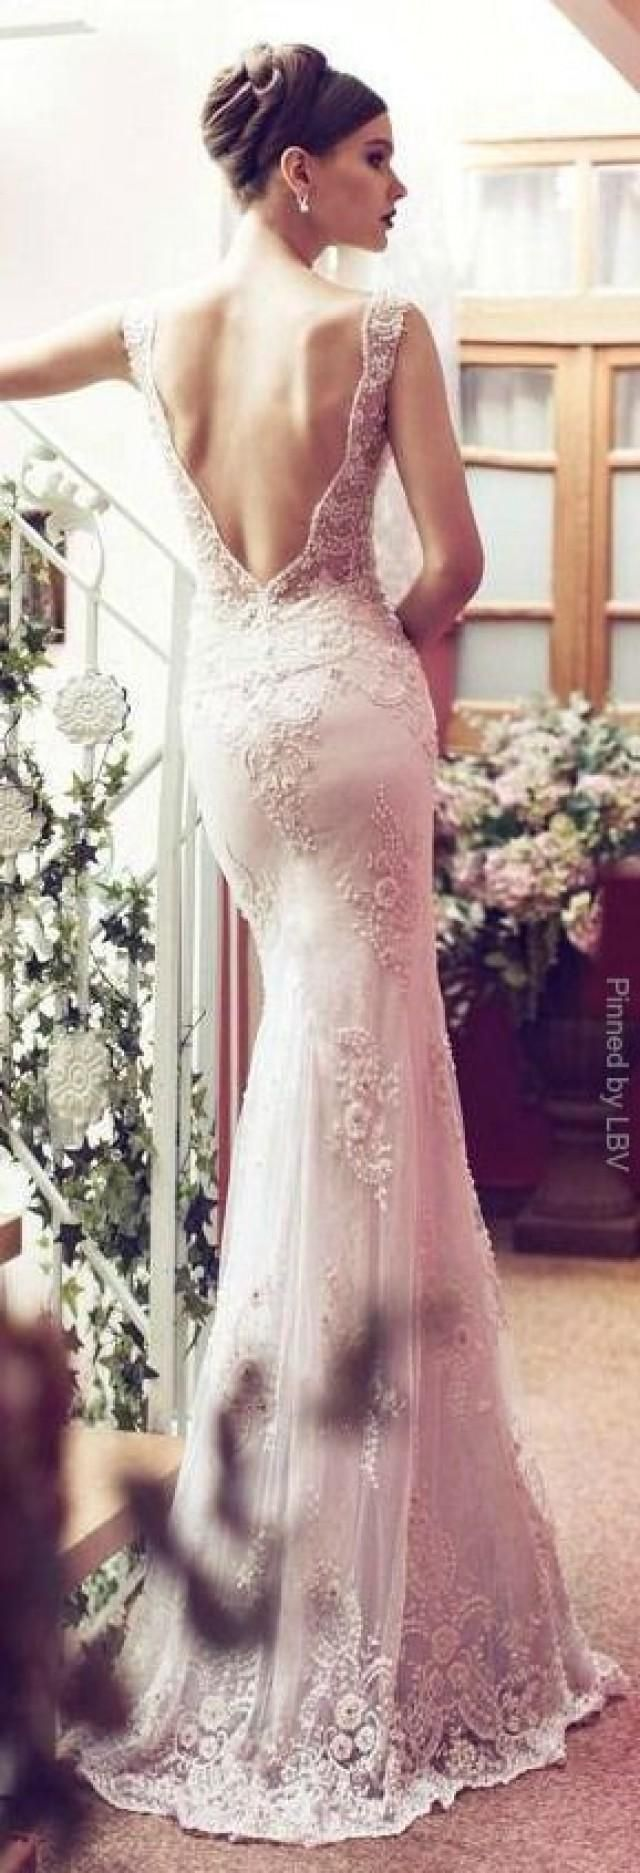 backless Wedding Dress | love is in the air | Pinterest | Kleider ...